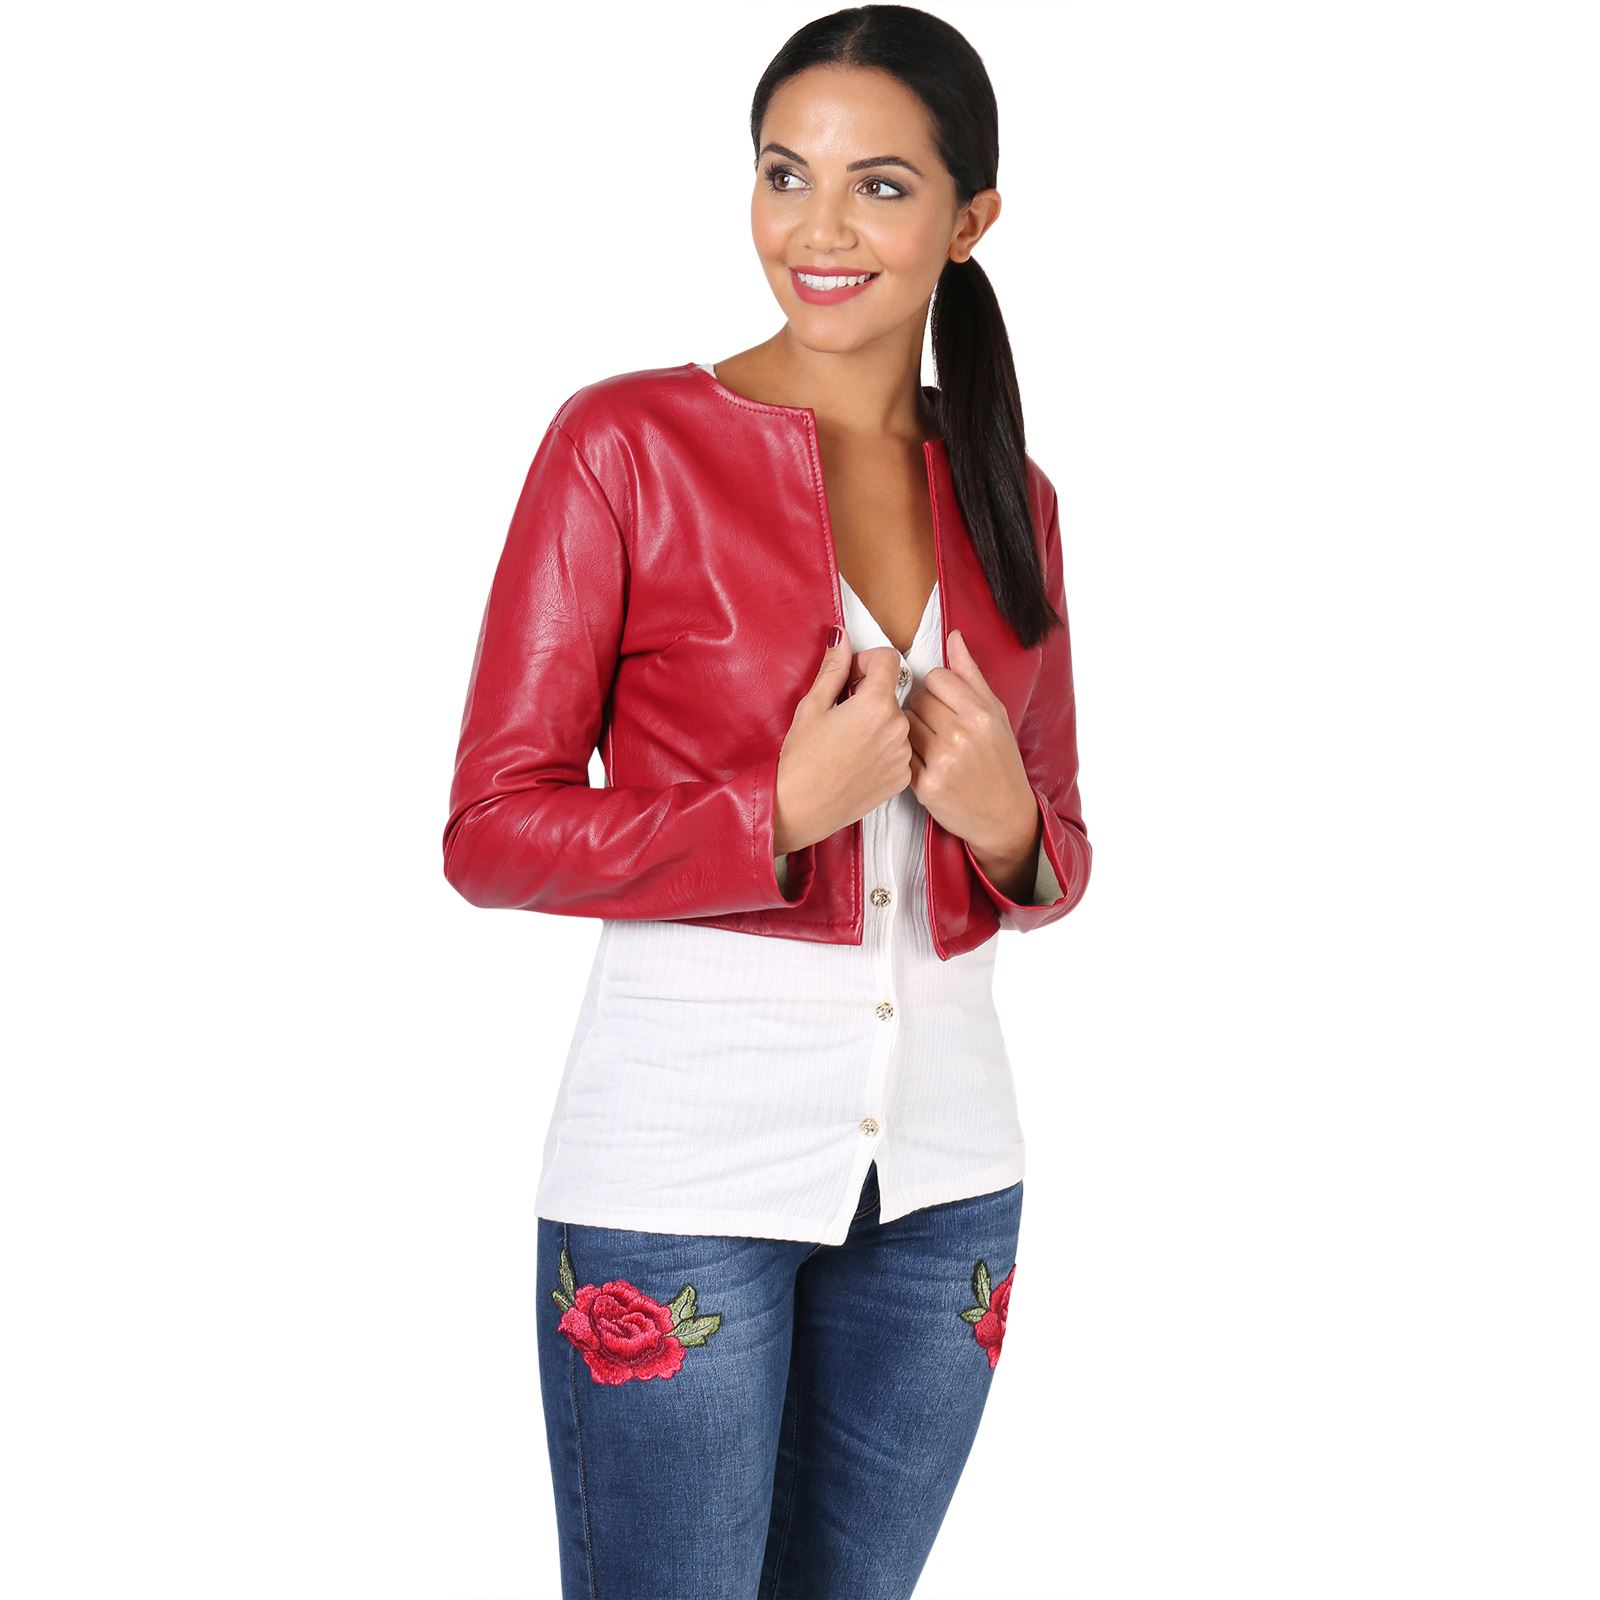 femmes veste blazer bol ro court mini bomber cuir bol ro jacket gilet cardigan ebay. Black Bedroom Furniture Sets. Home Design Ideas